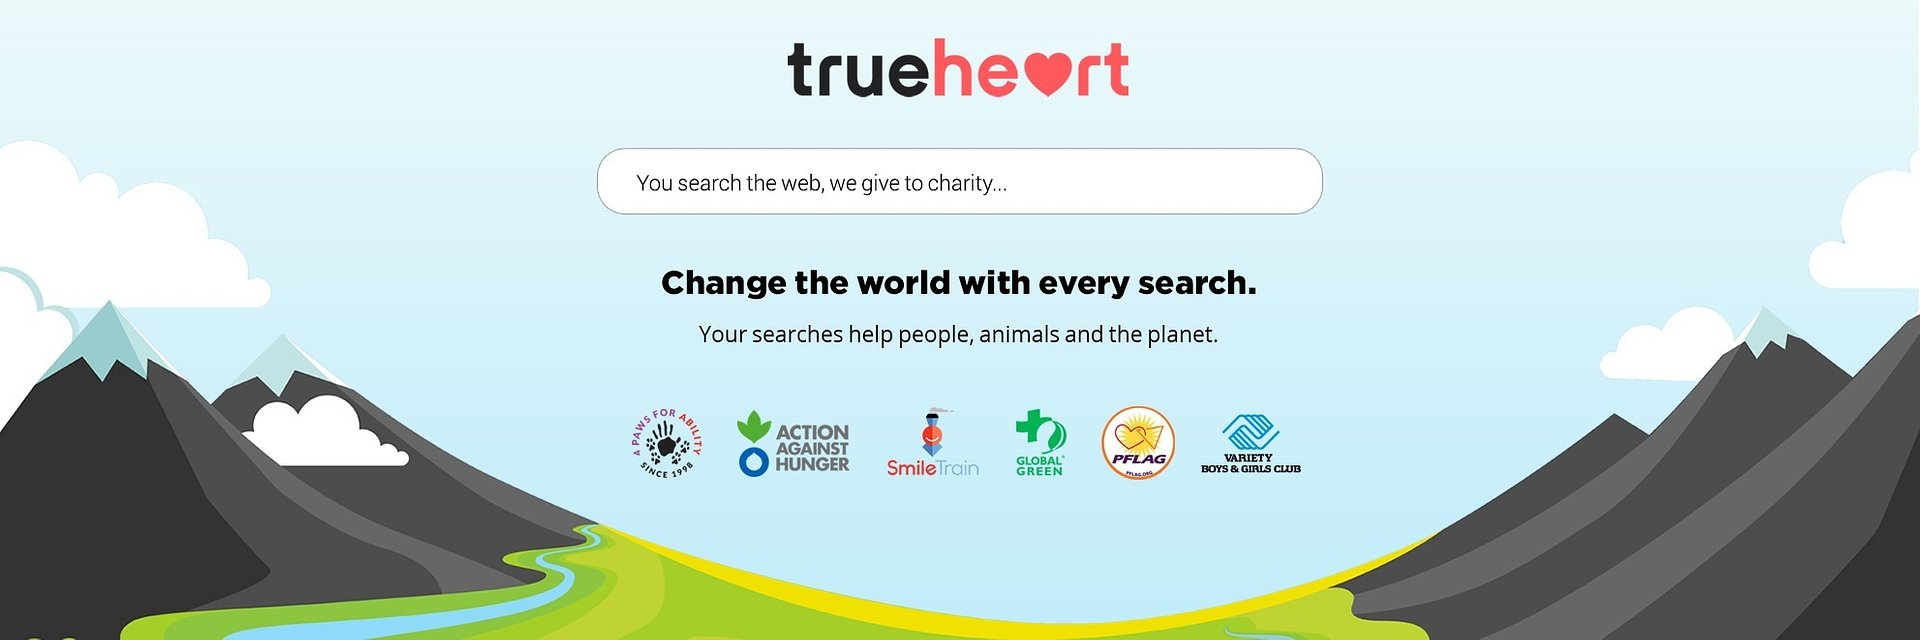 SAVE LIVES WITH EVERY SEARCH AT TRUEHEART